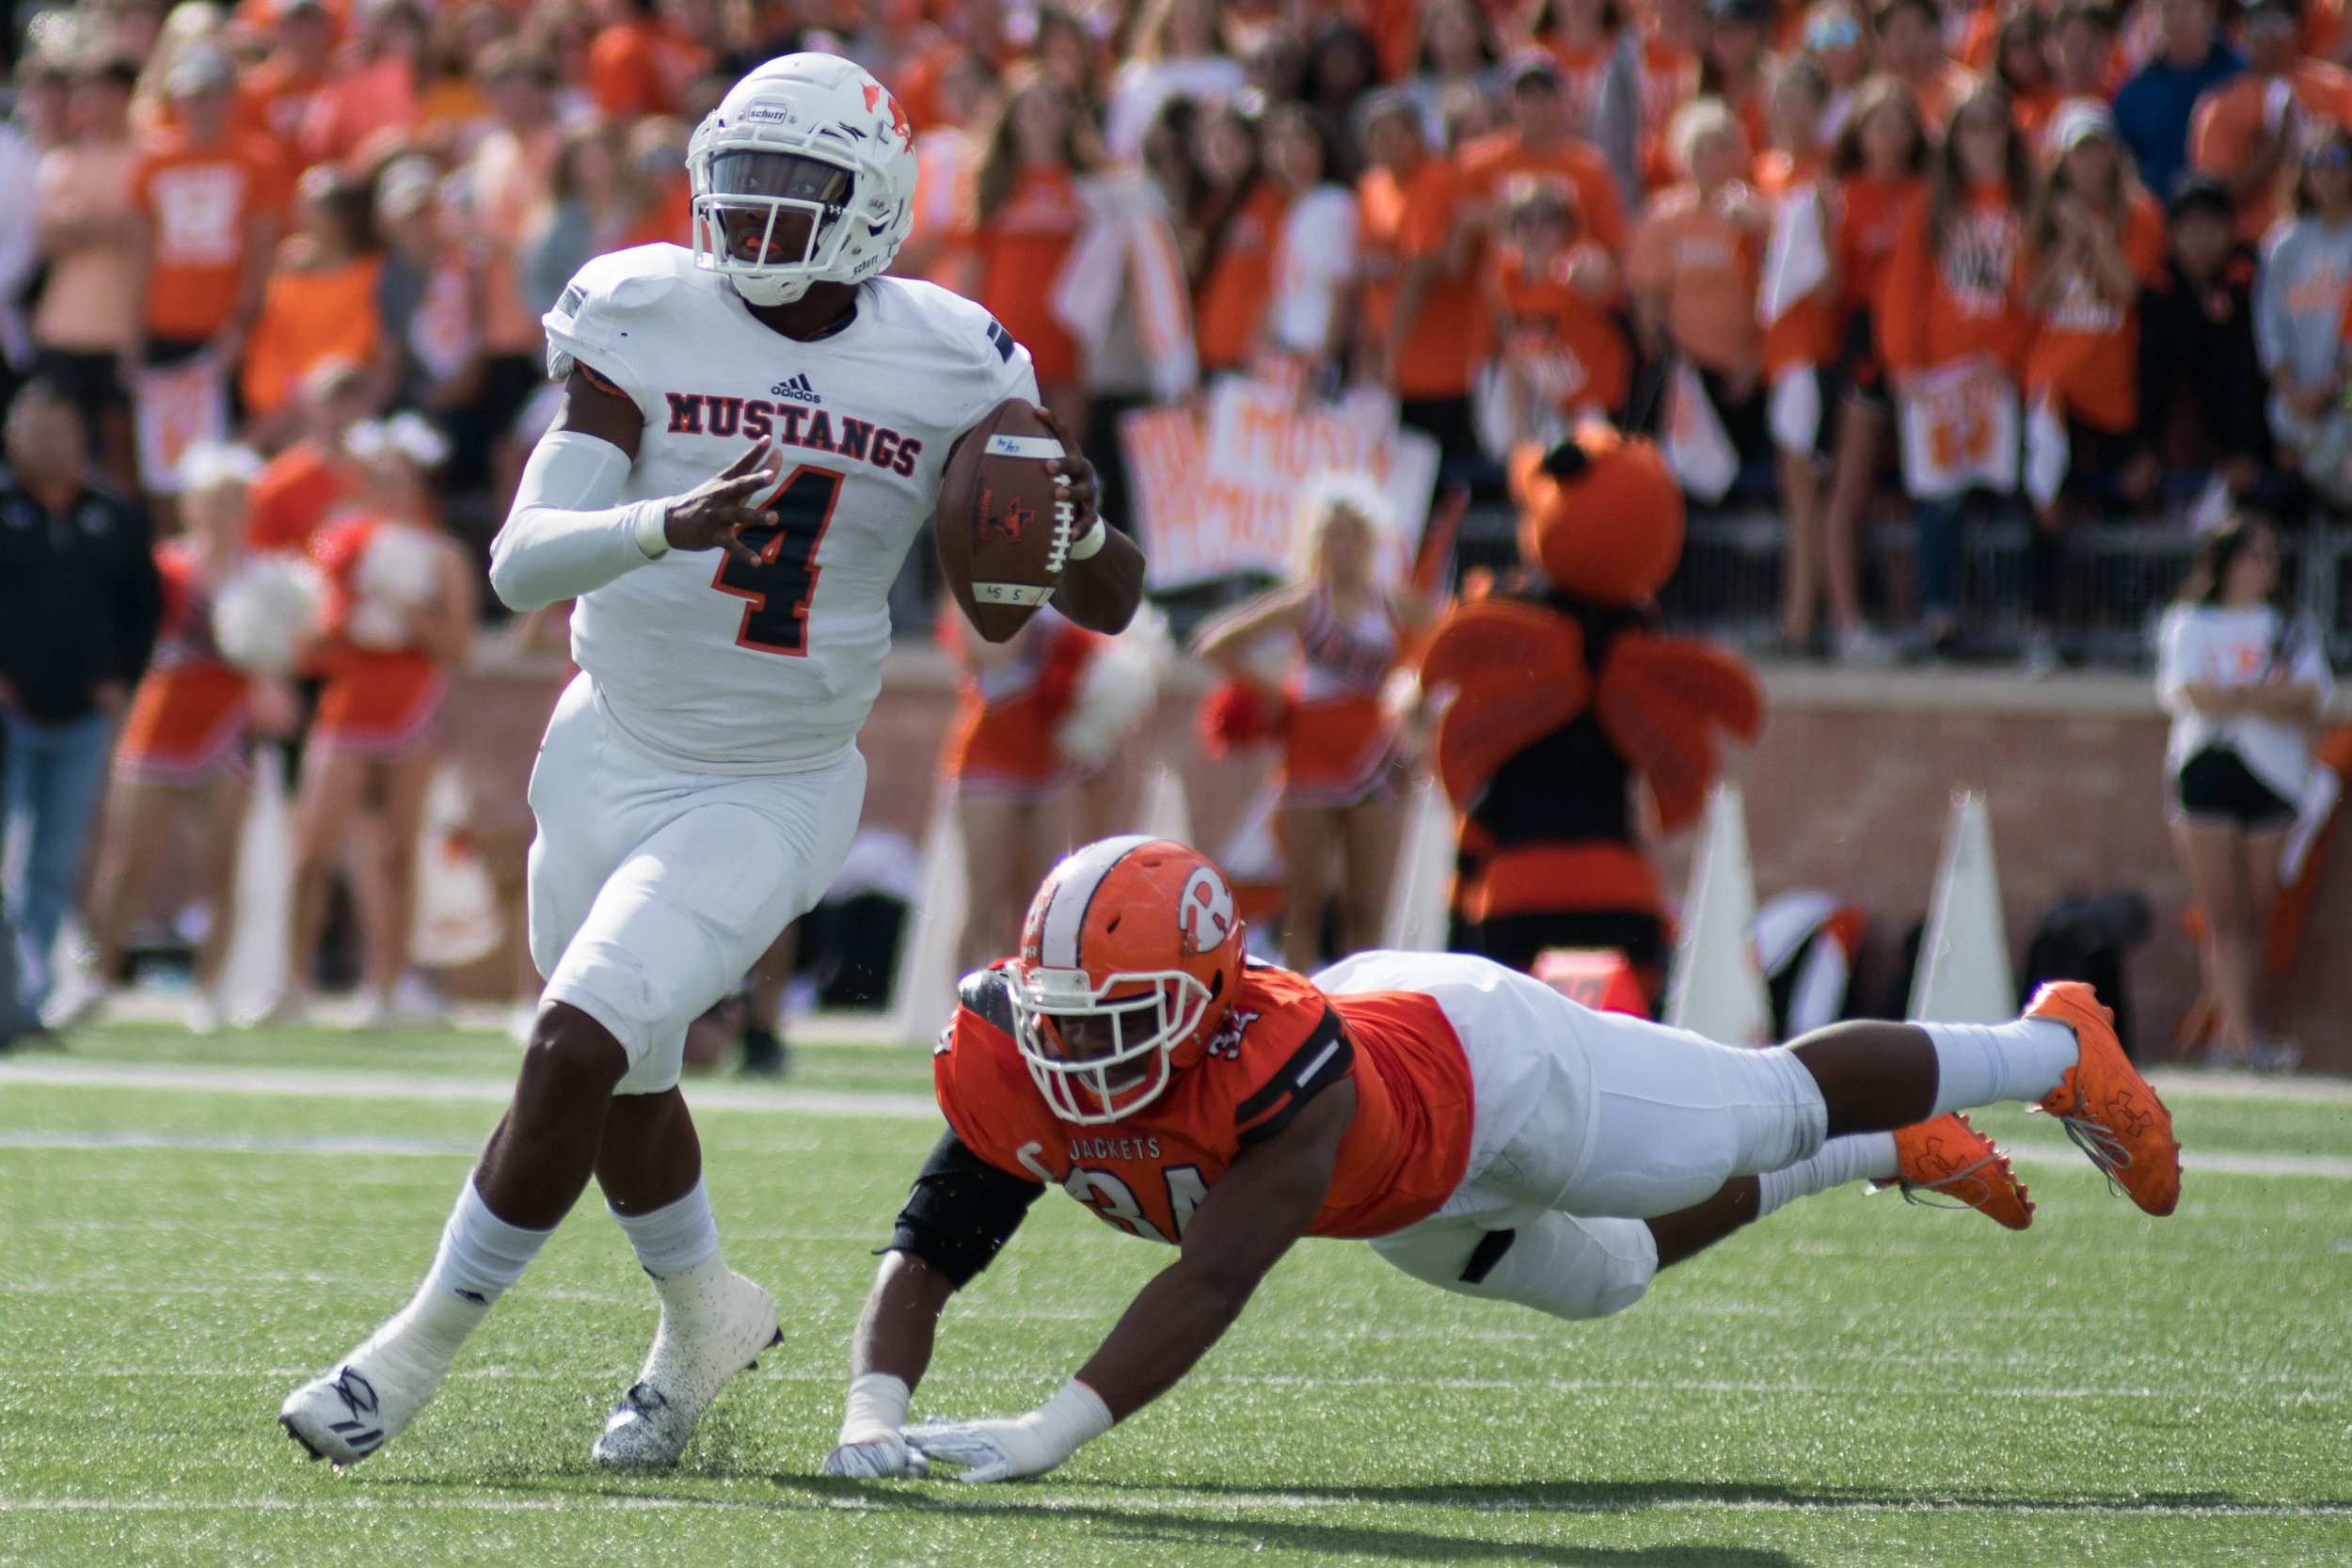 Sachse's Jalen Mayden slips past a Rockwall defender. | Shot with Nikon D500 w/ Nikkor 80-200 f2.8